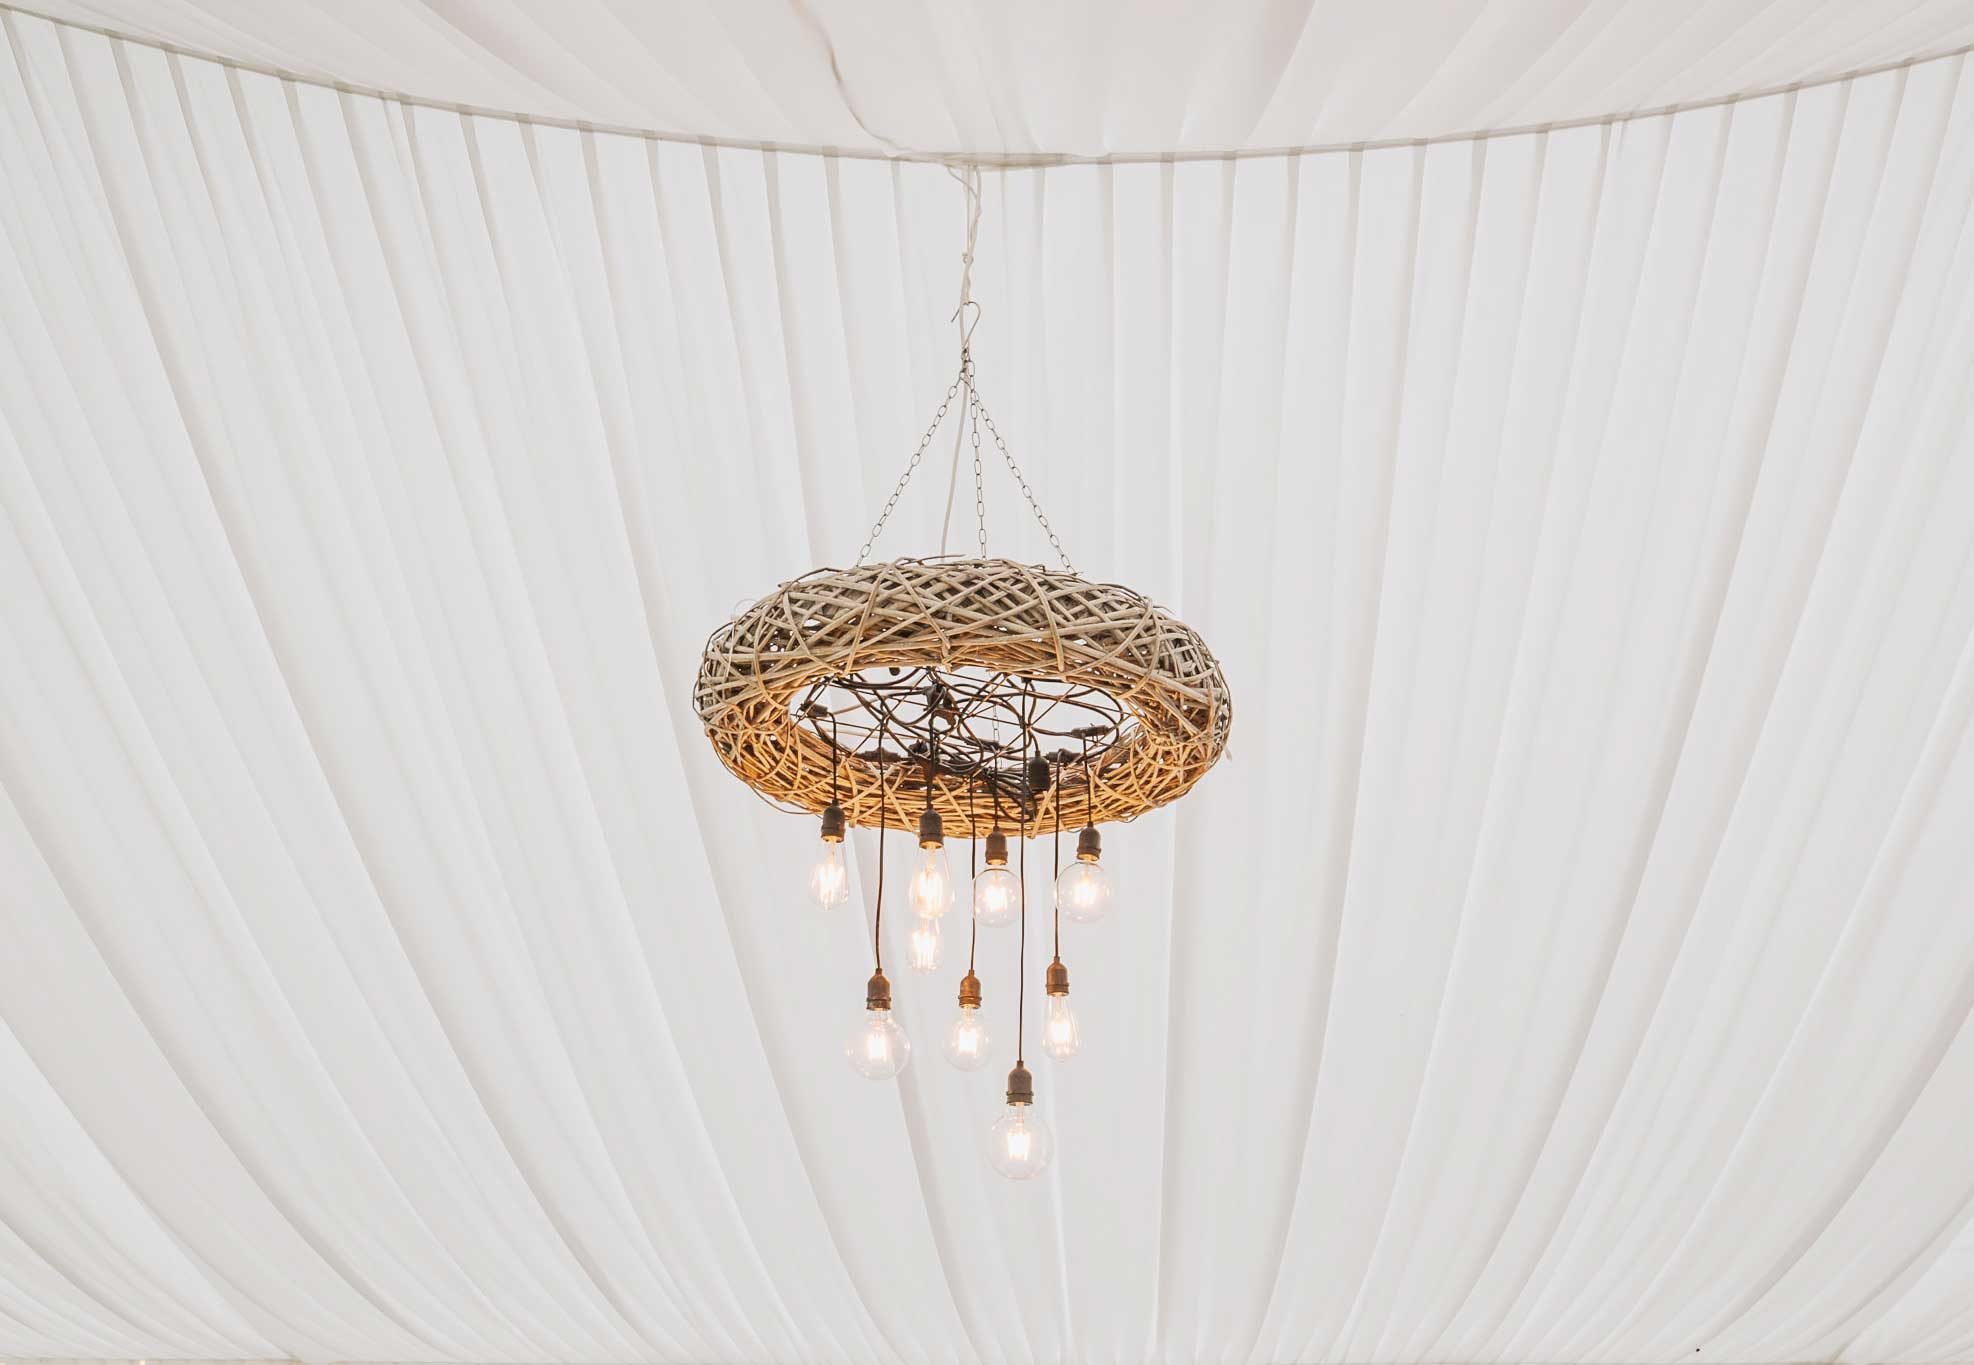 silk-estate-marquee-weddings-and-events-styling-and-hire-lightting-festoon-7